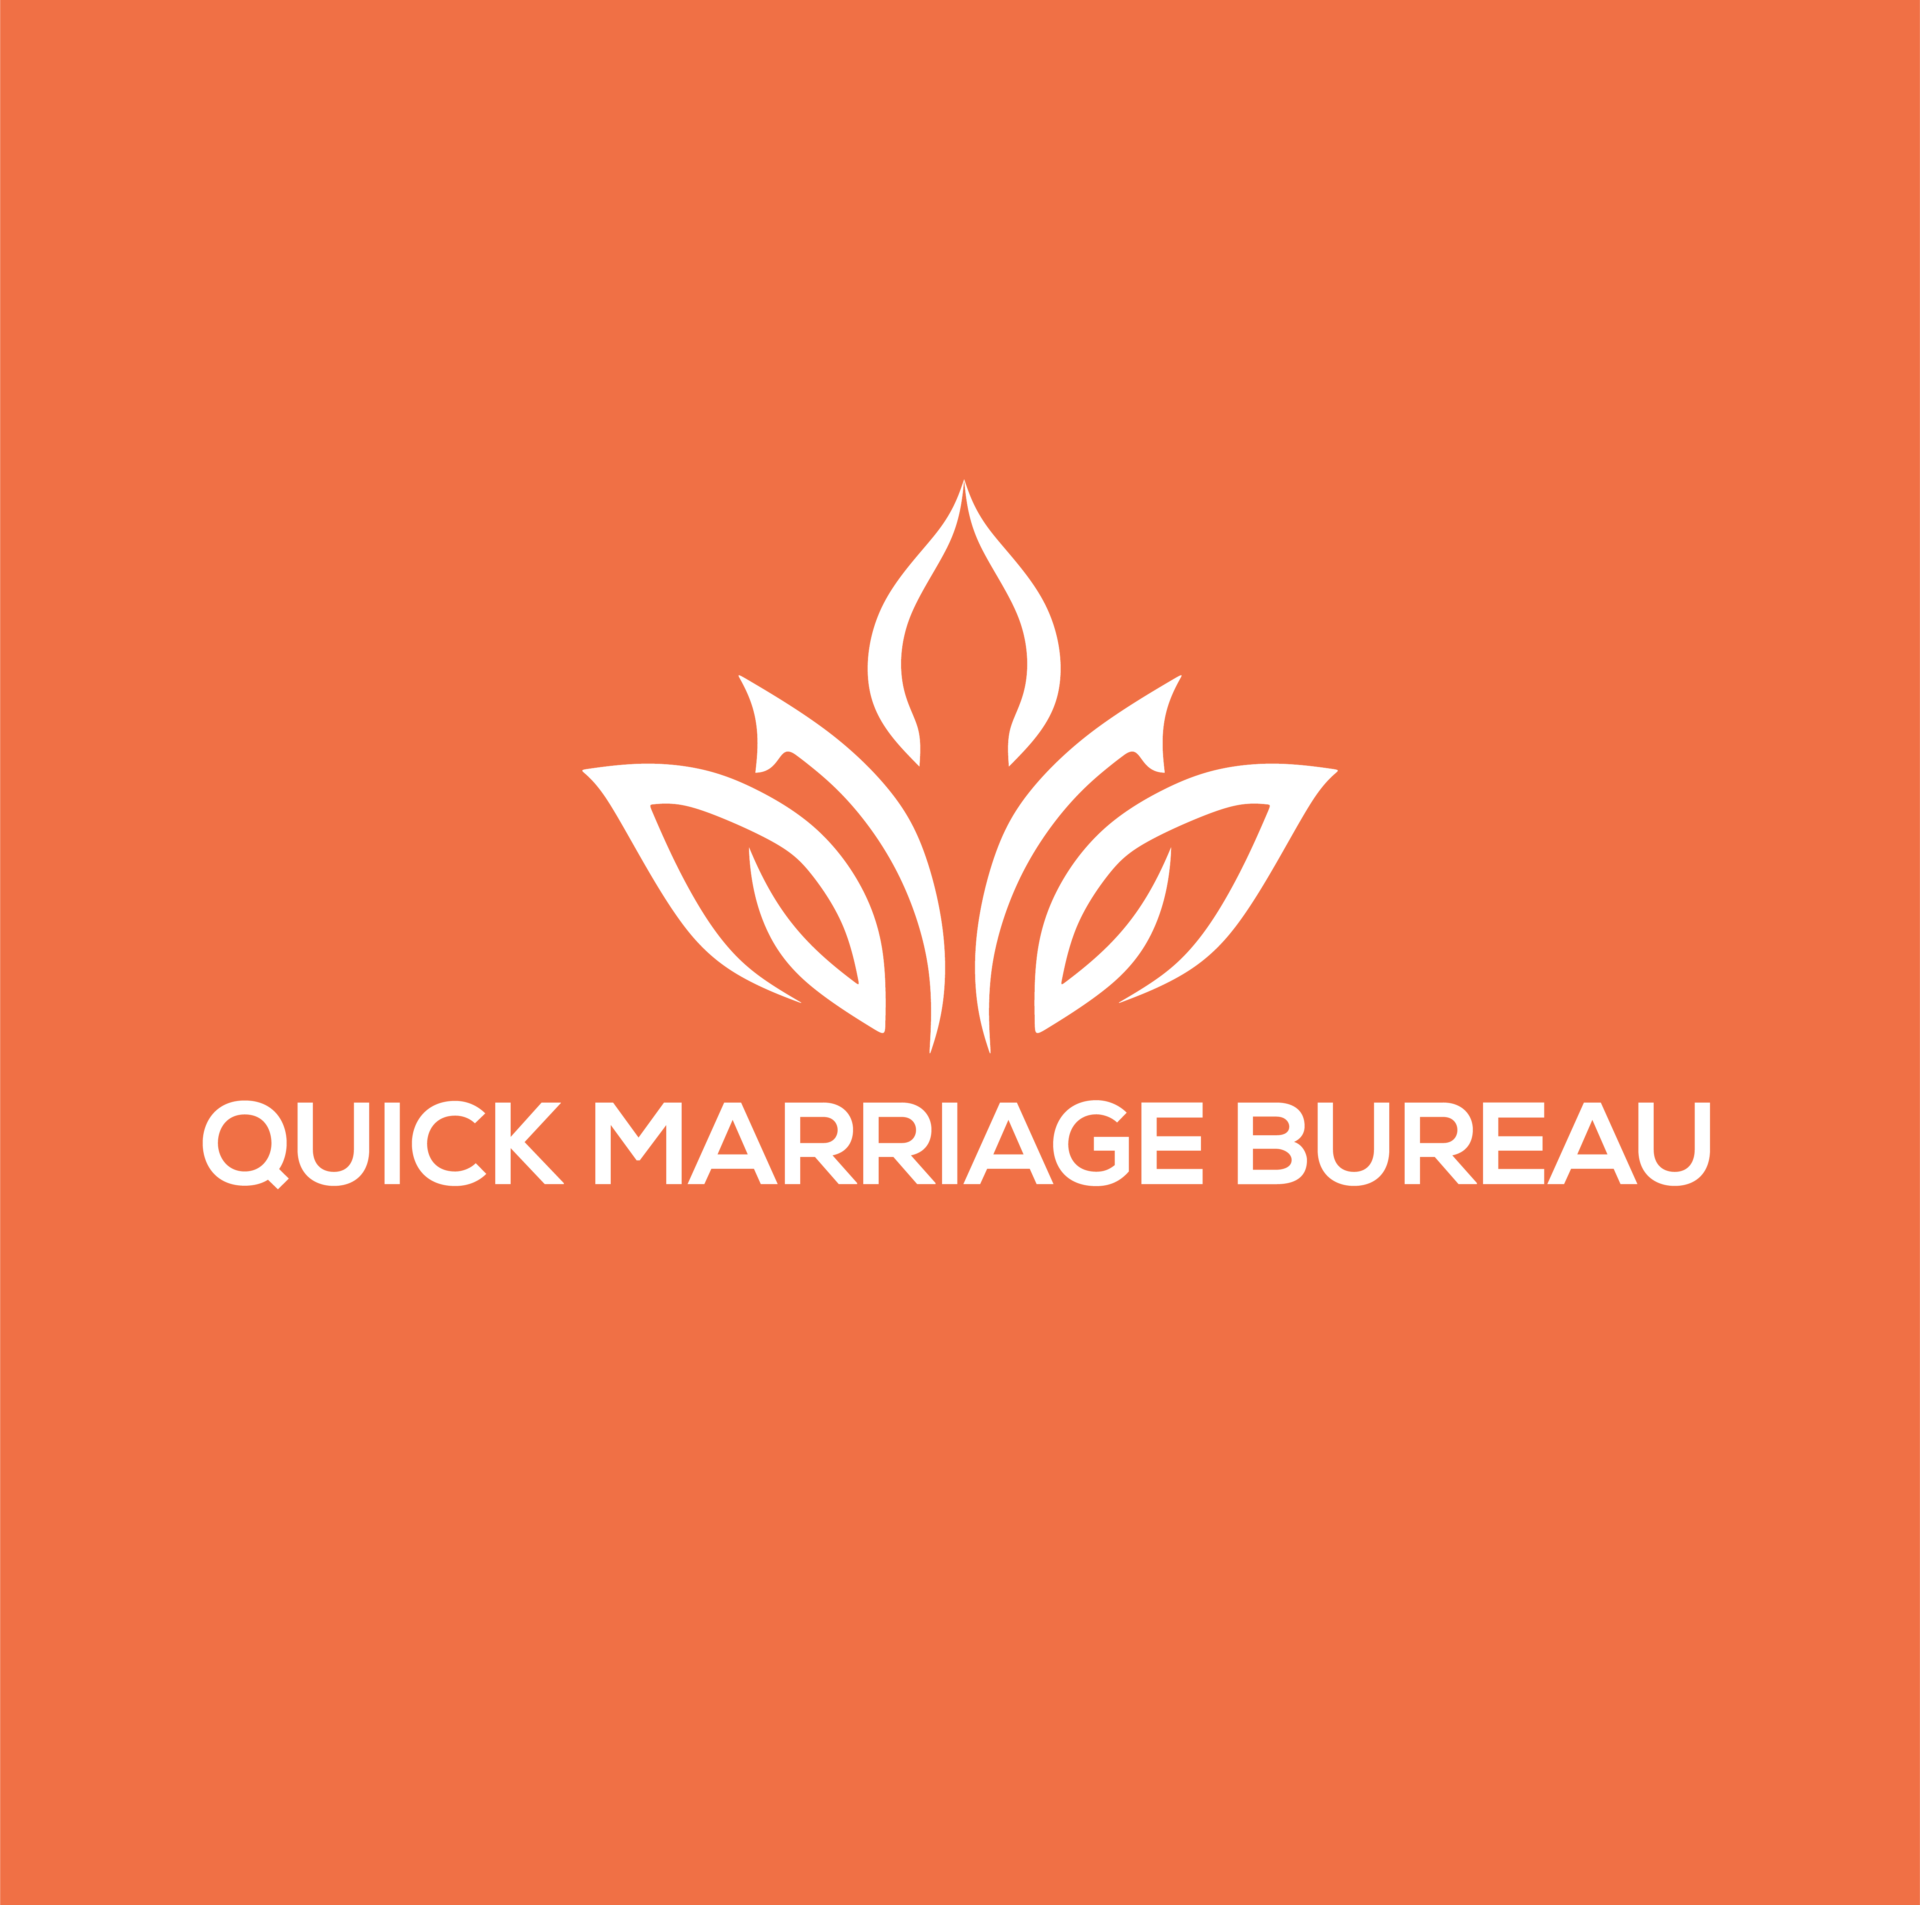 Quick Marriage Bureau